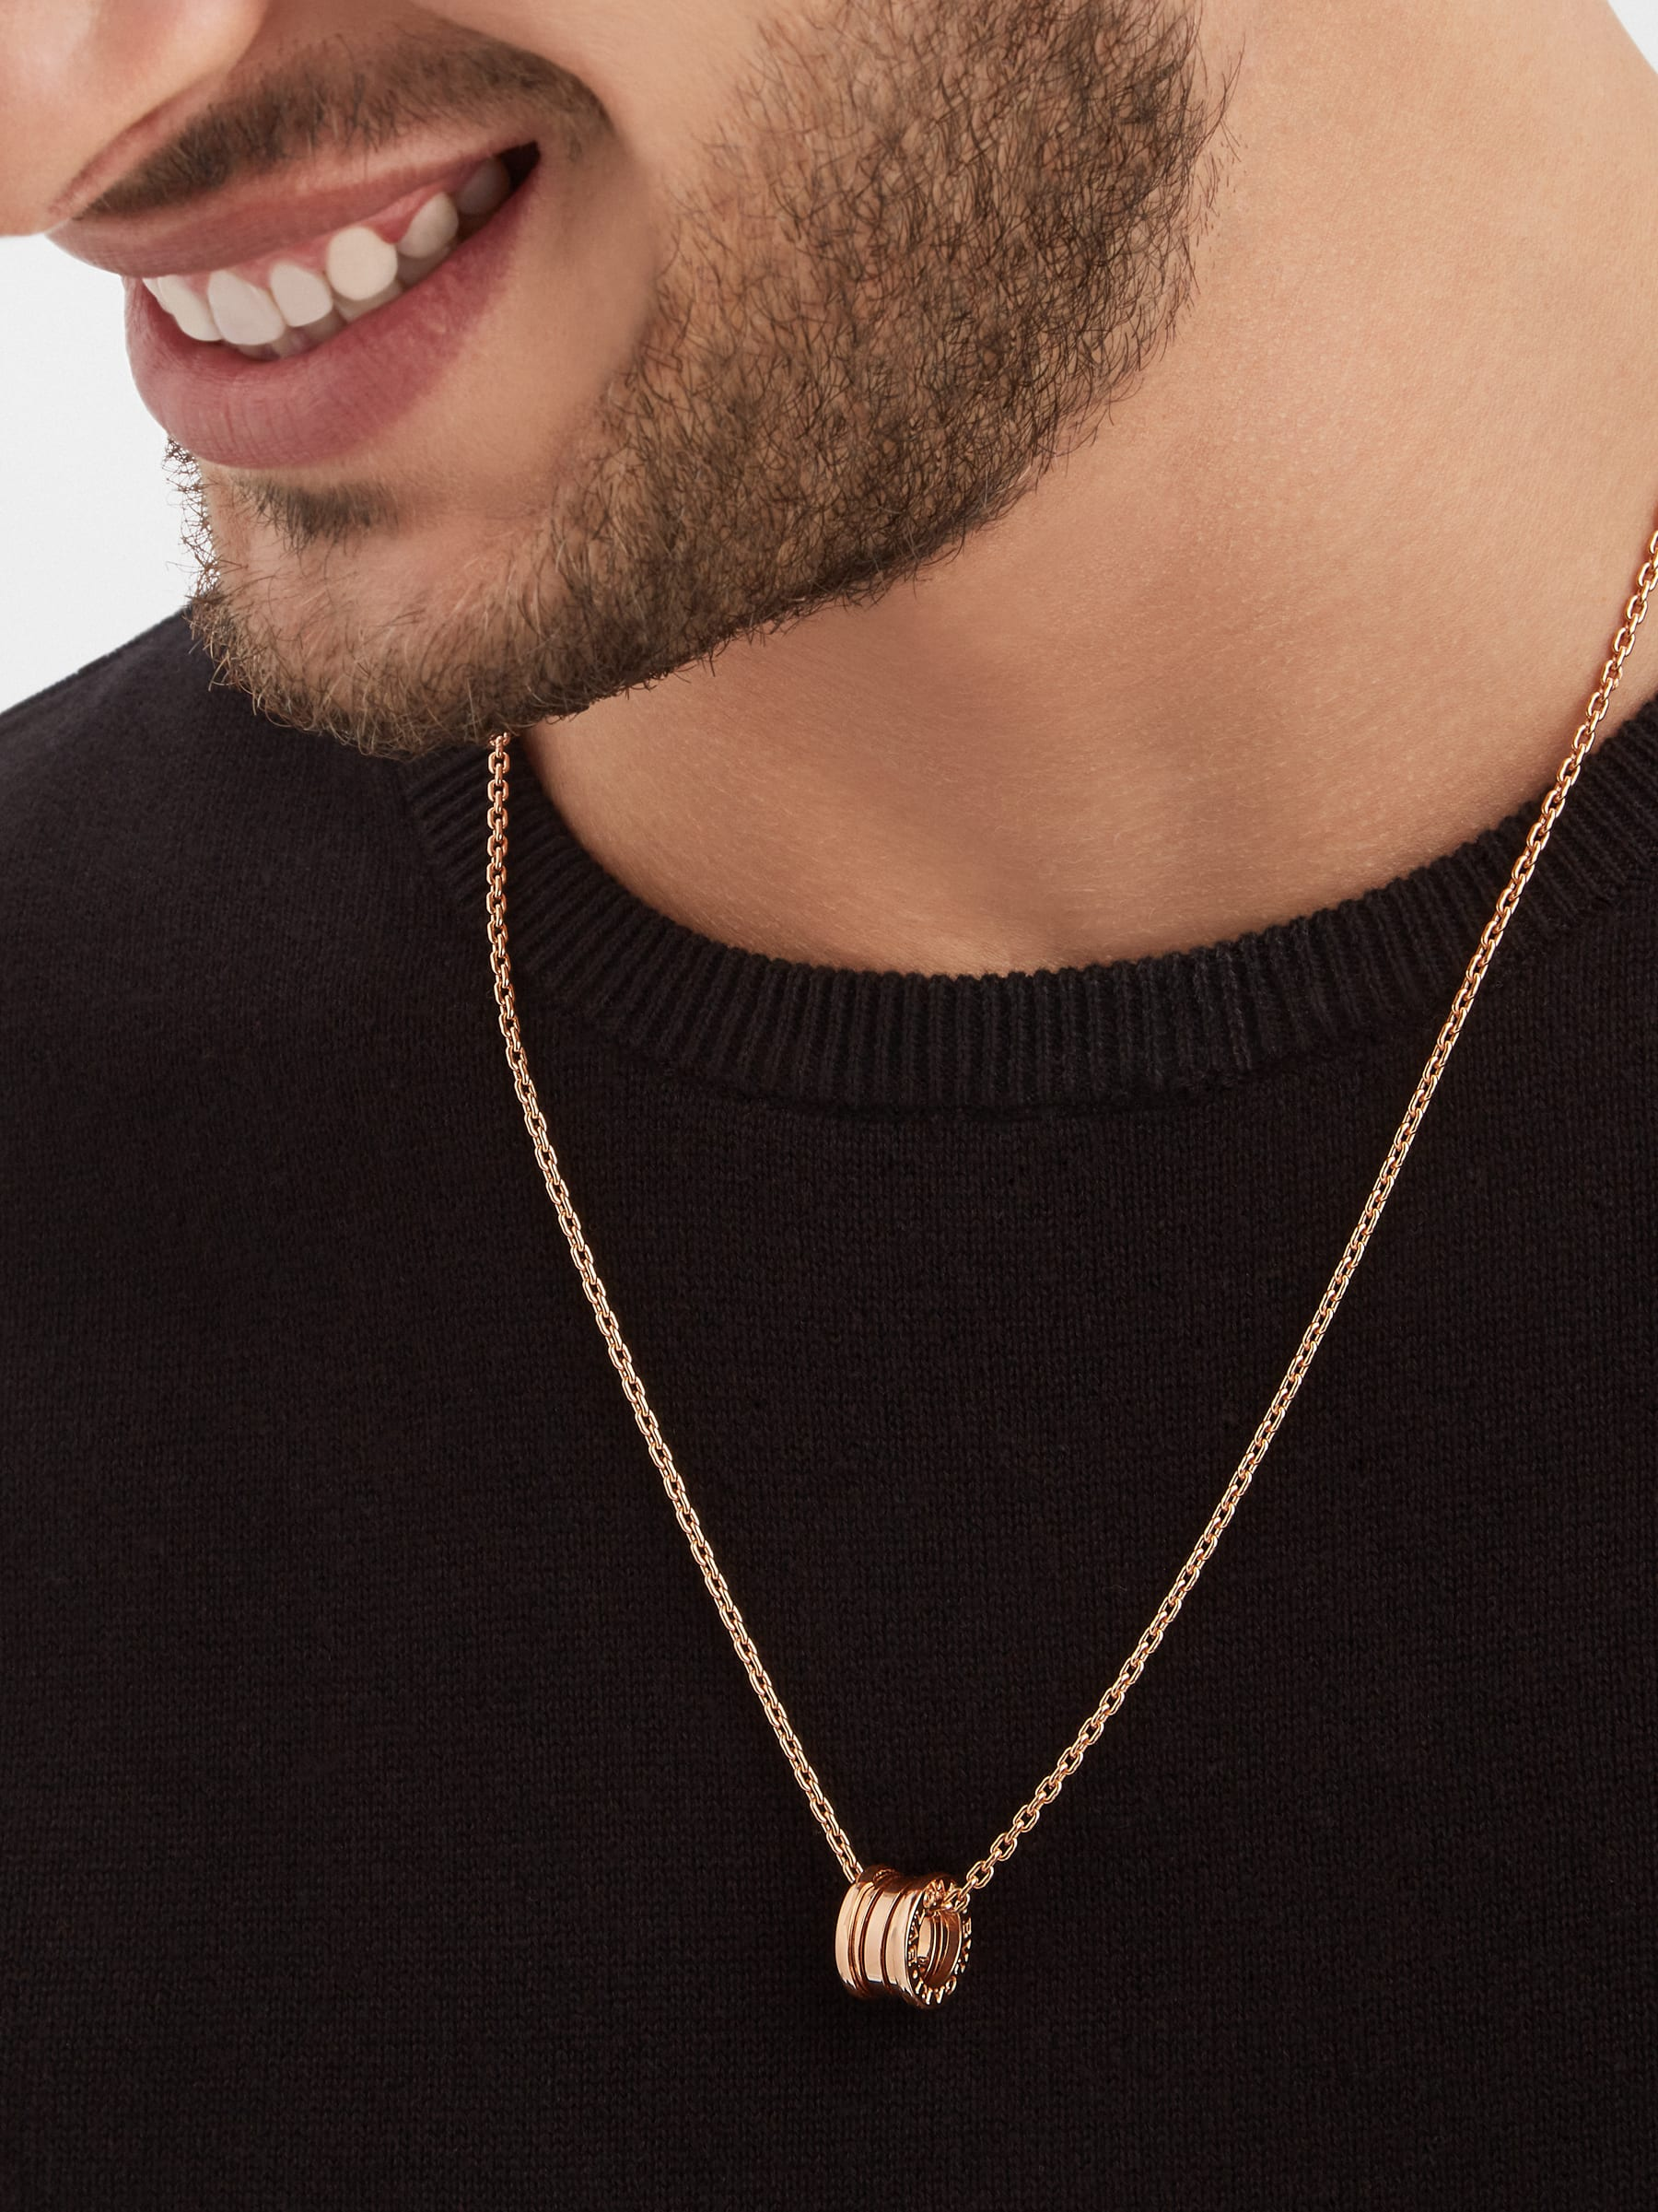 B.zero1 pendant necklace in 18 kt rose gold 358348 image 5